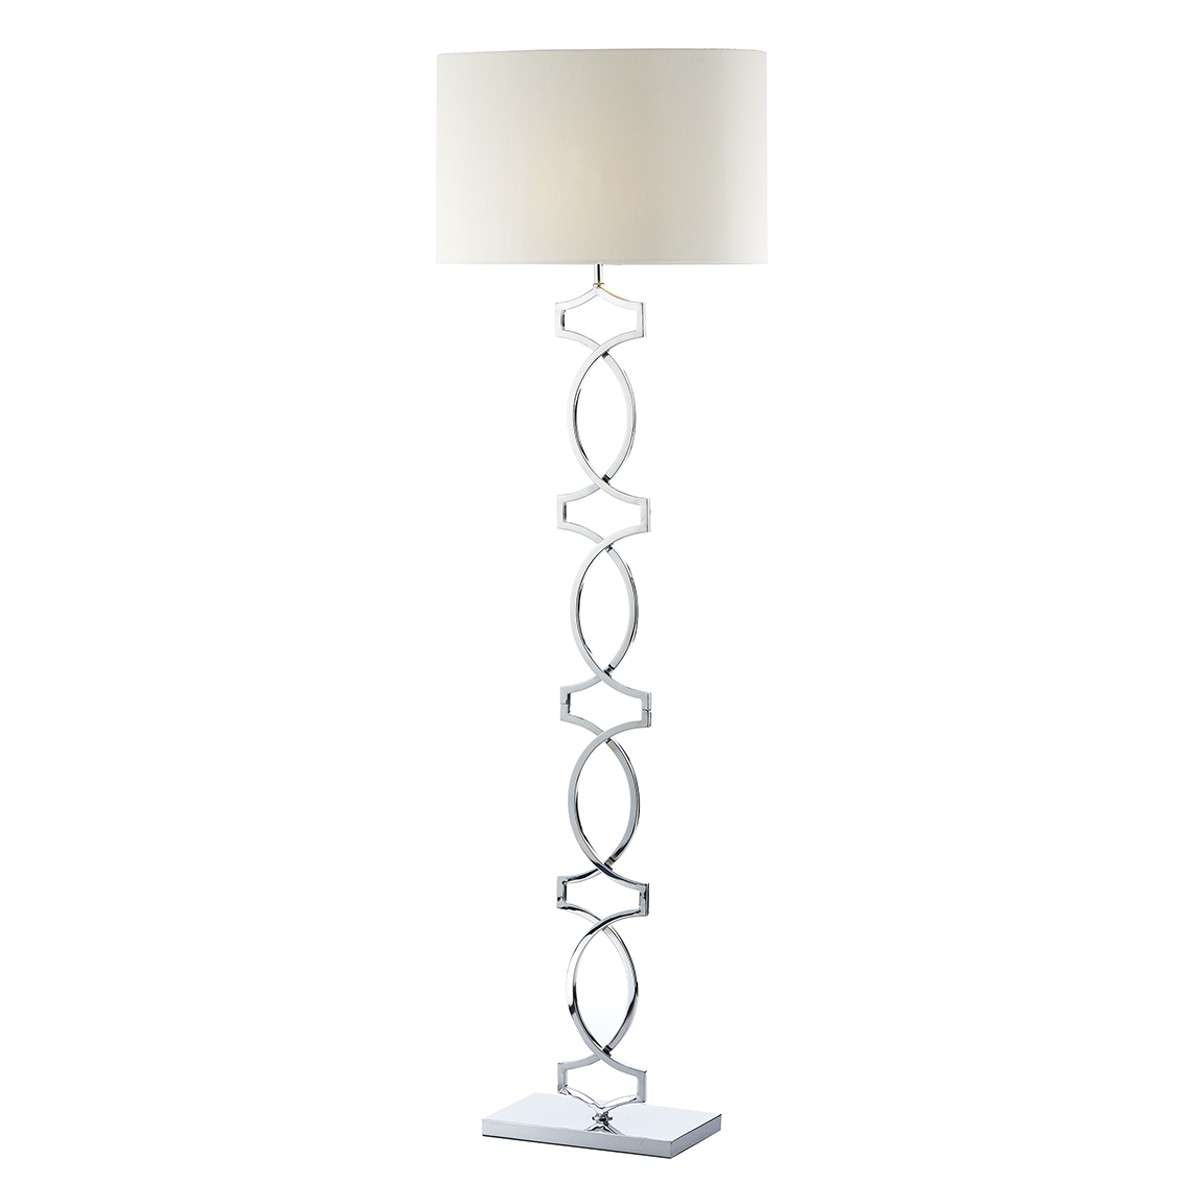 Donovan Floor Lamp Polished Chrome complete with Shade